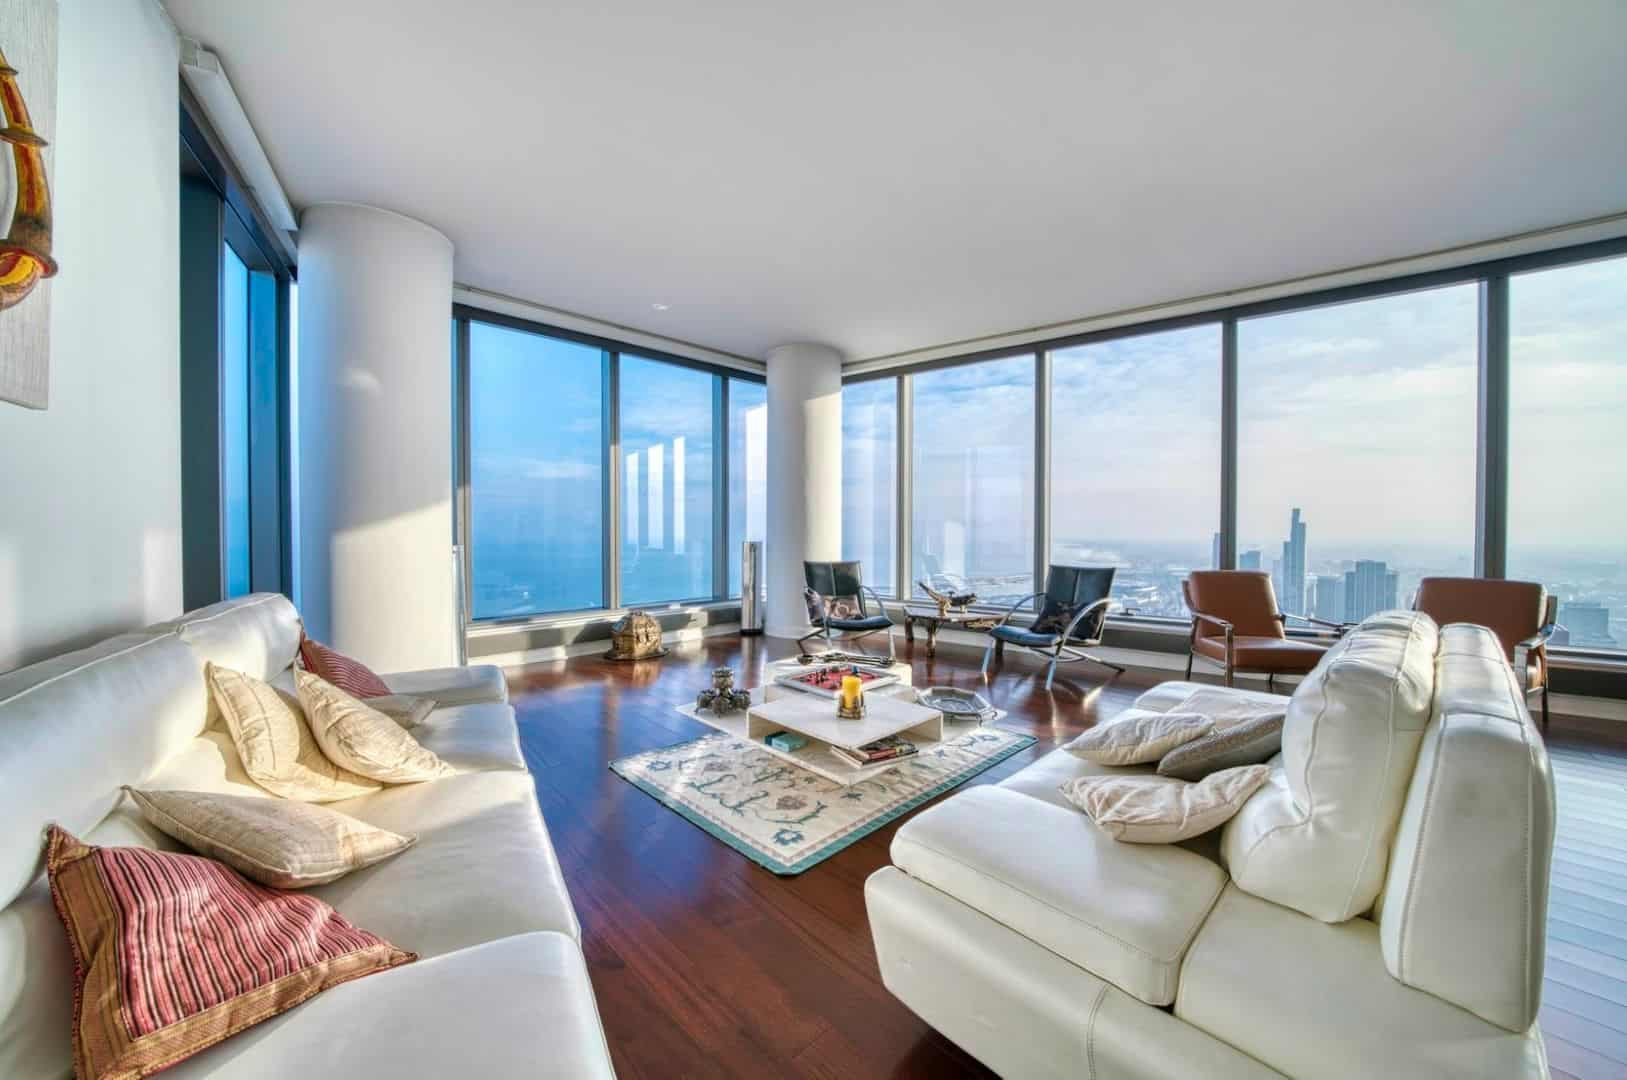 Spectacular Downtown Chicago Penthouse Rental - Living Room 2